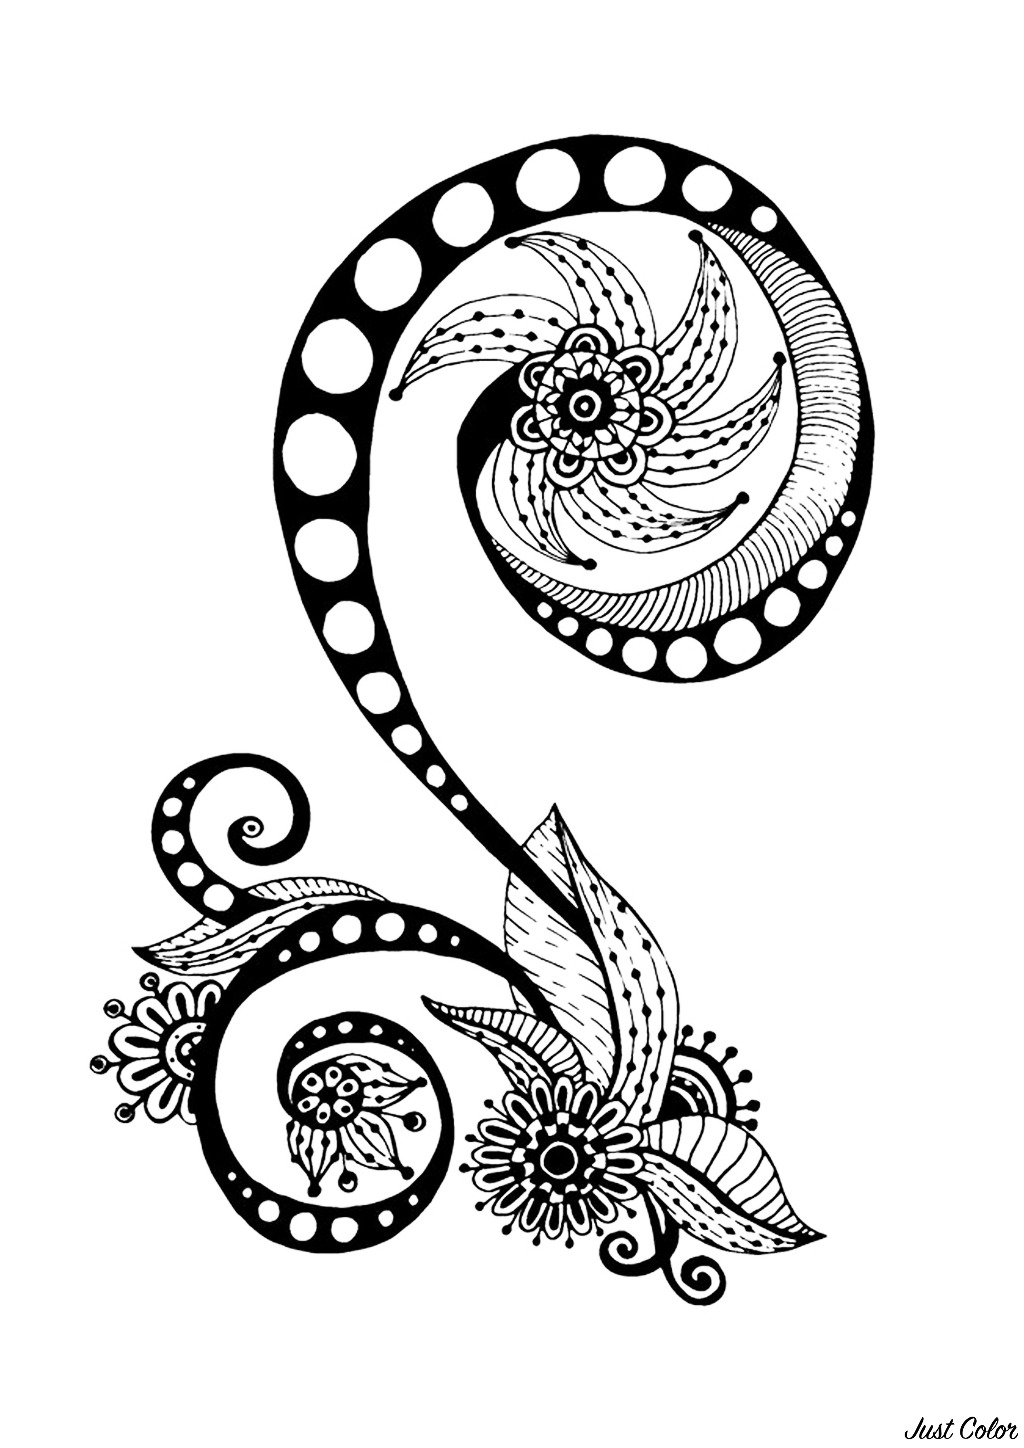 Zen & Anti-stress Coloring page : Abstract pattern inspired by flowers : n°11